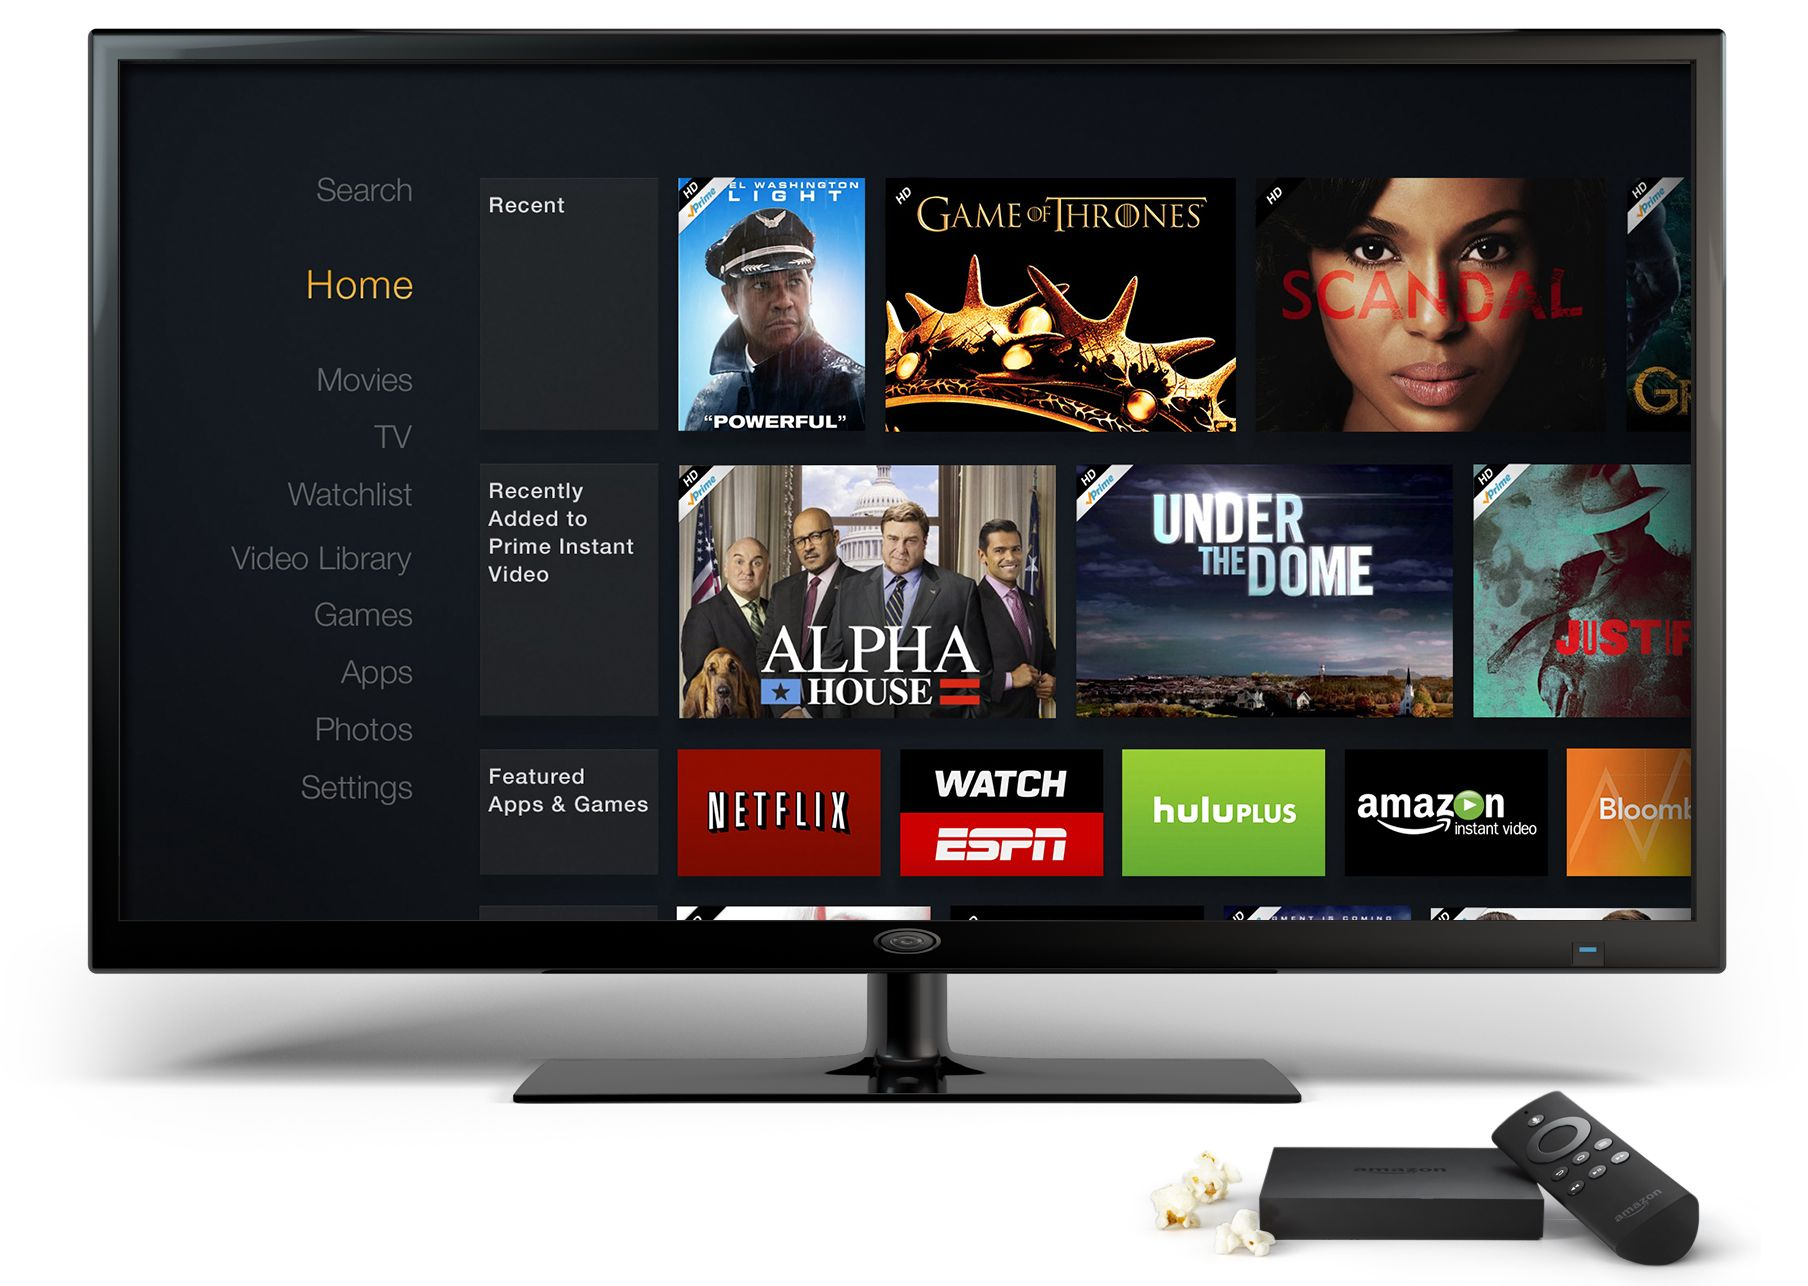 Amazon Fire TV (Homescreen 002)